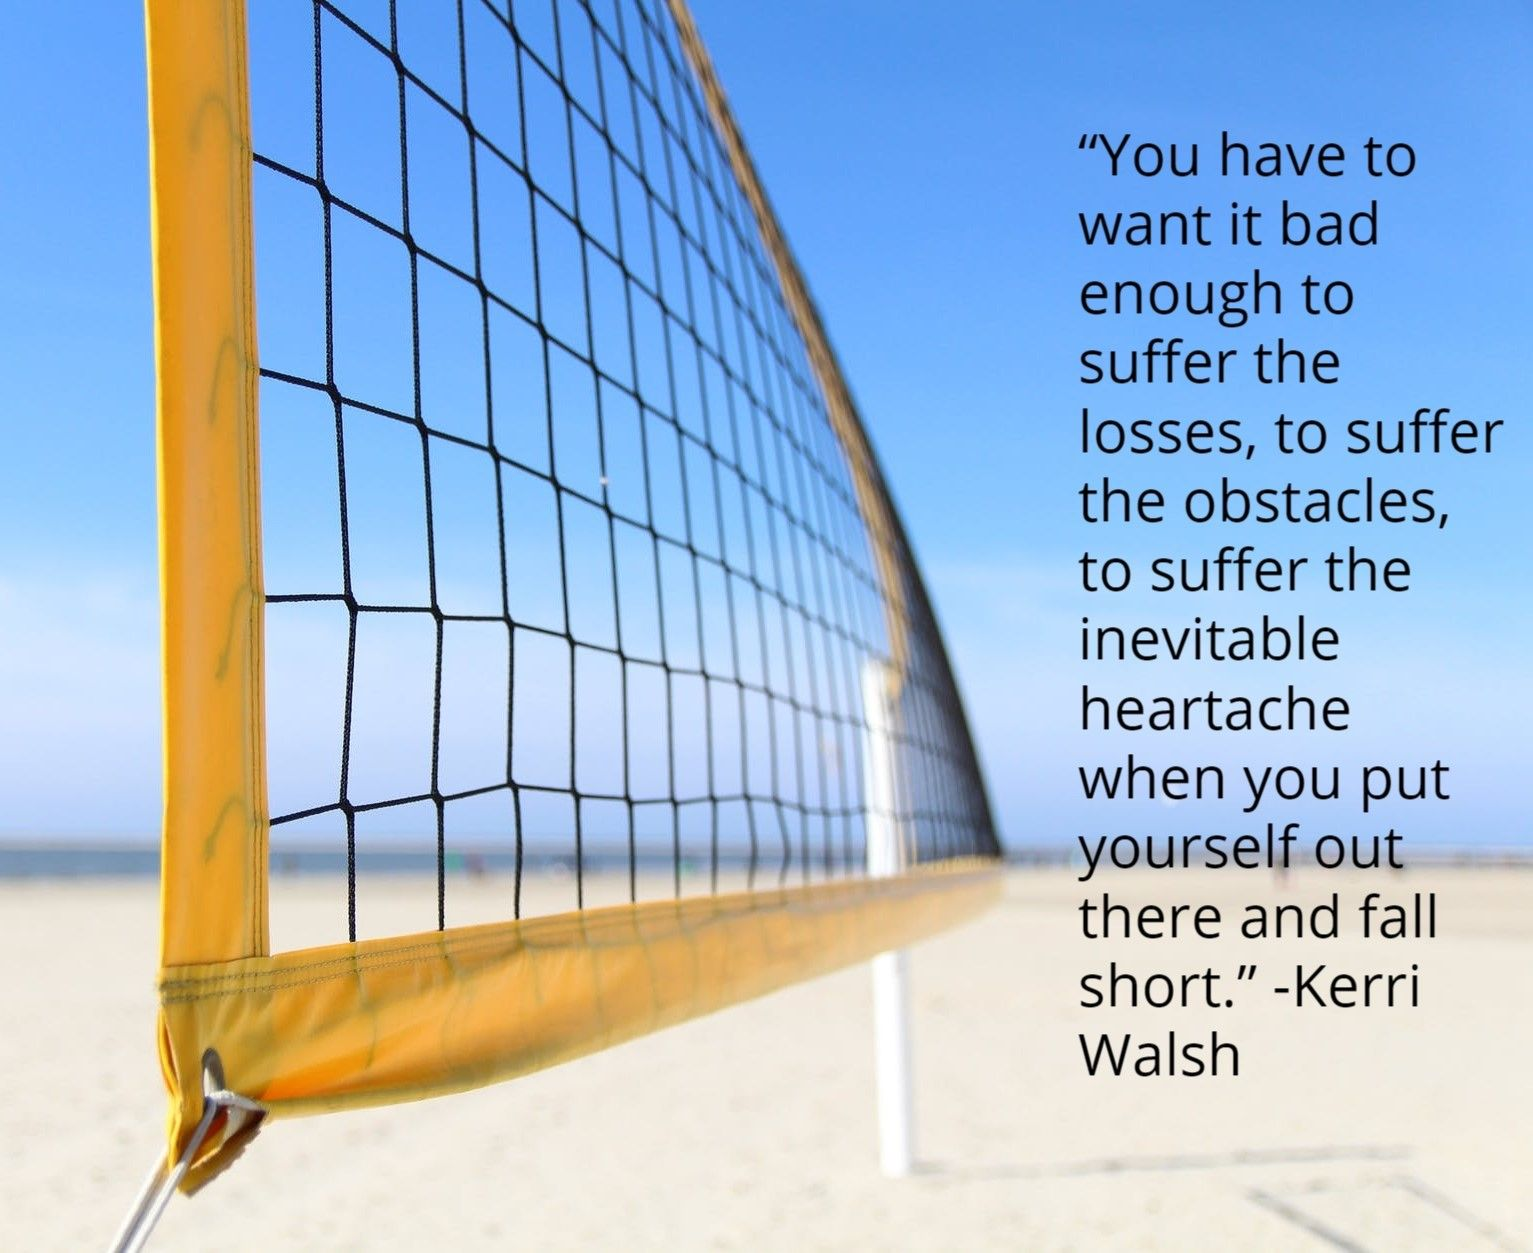 Best Volleyball Quotes Check Out Volleyball Quotes From Great Players To Get You Motivated For The Season Volleyball Quotes Sports Quotes Coaching Volleyball